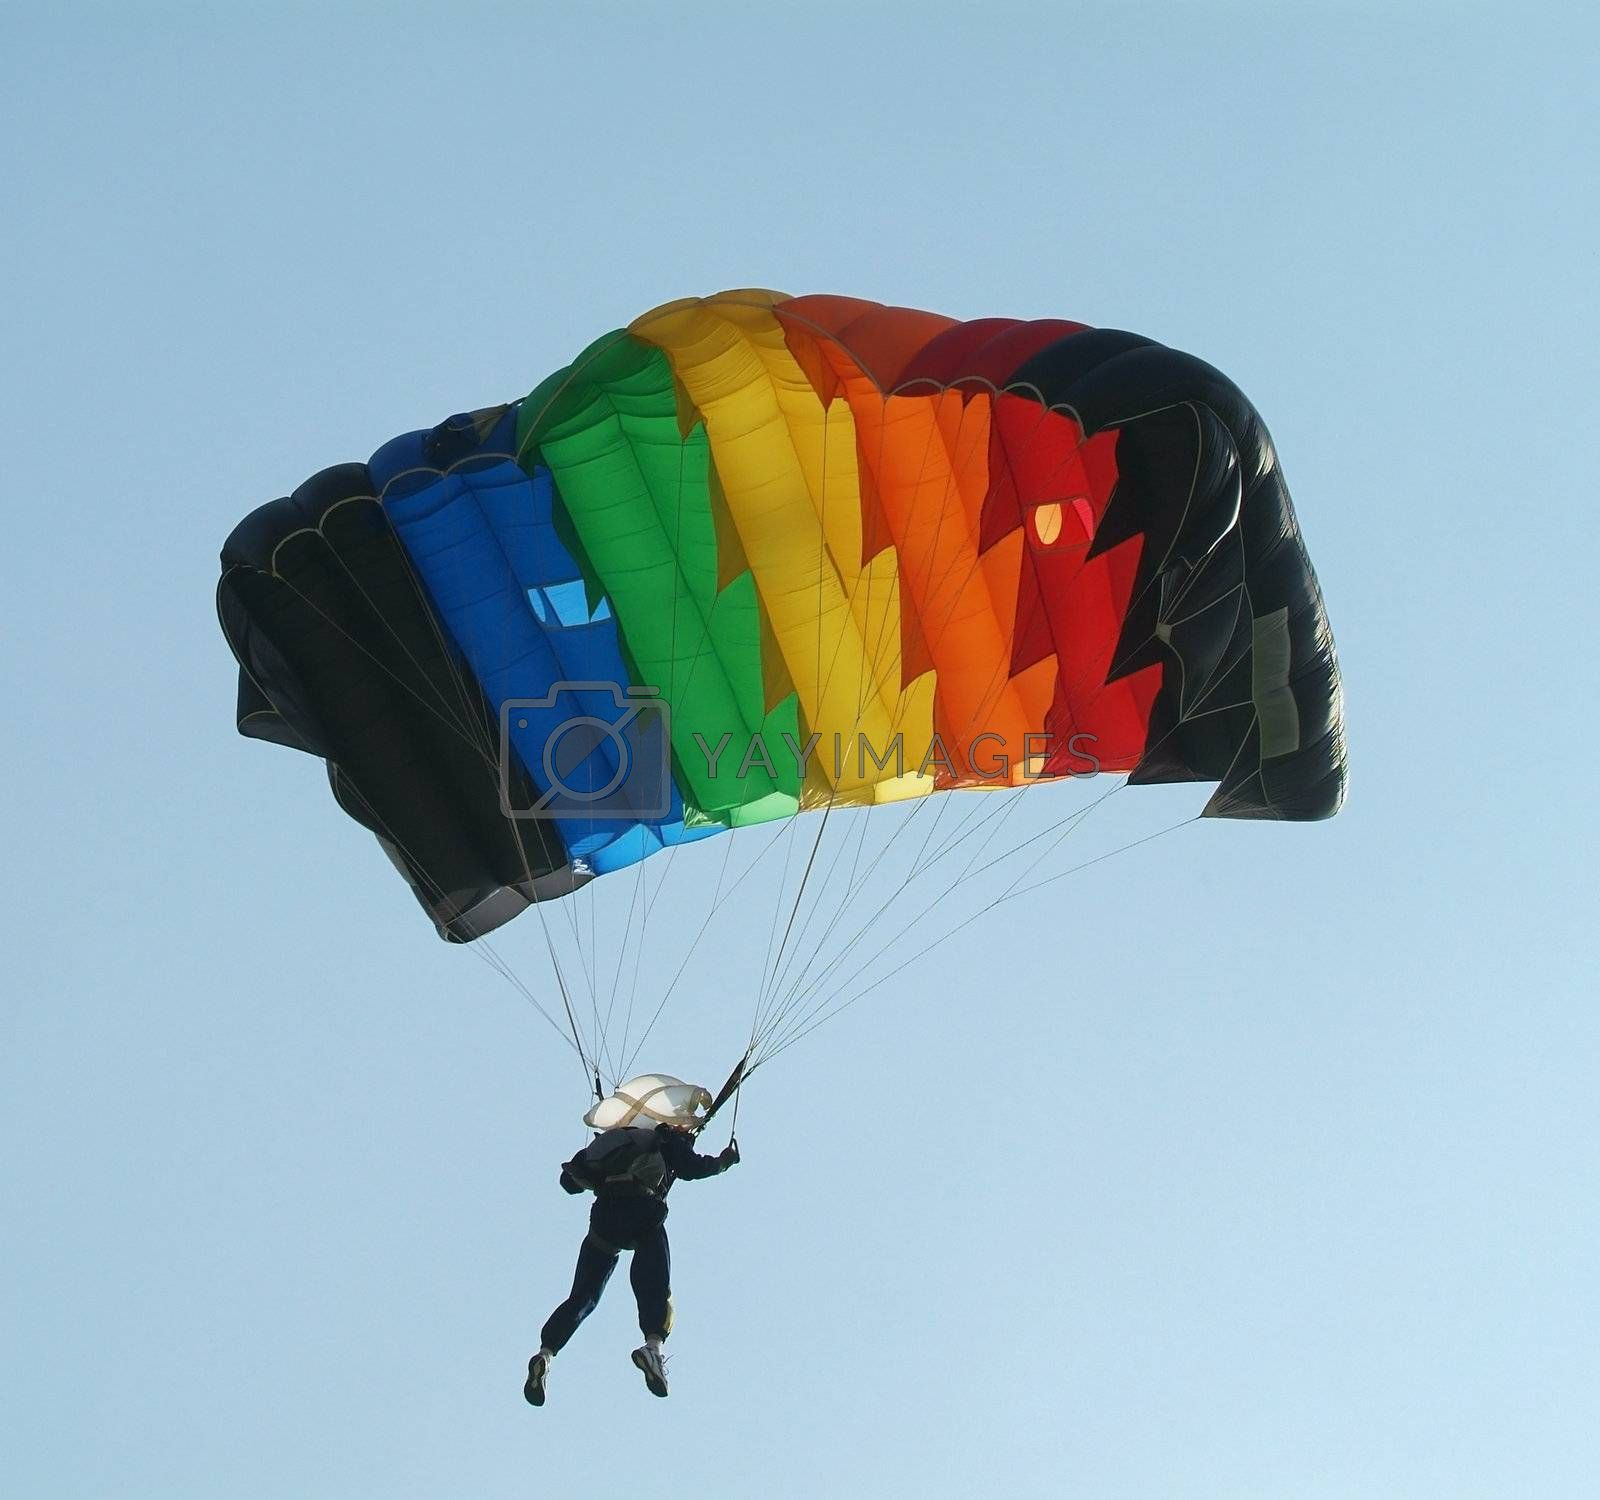 Parachutist with colourful parachute by epixx